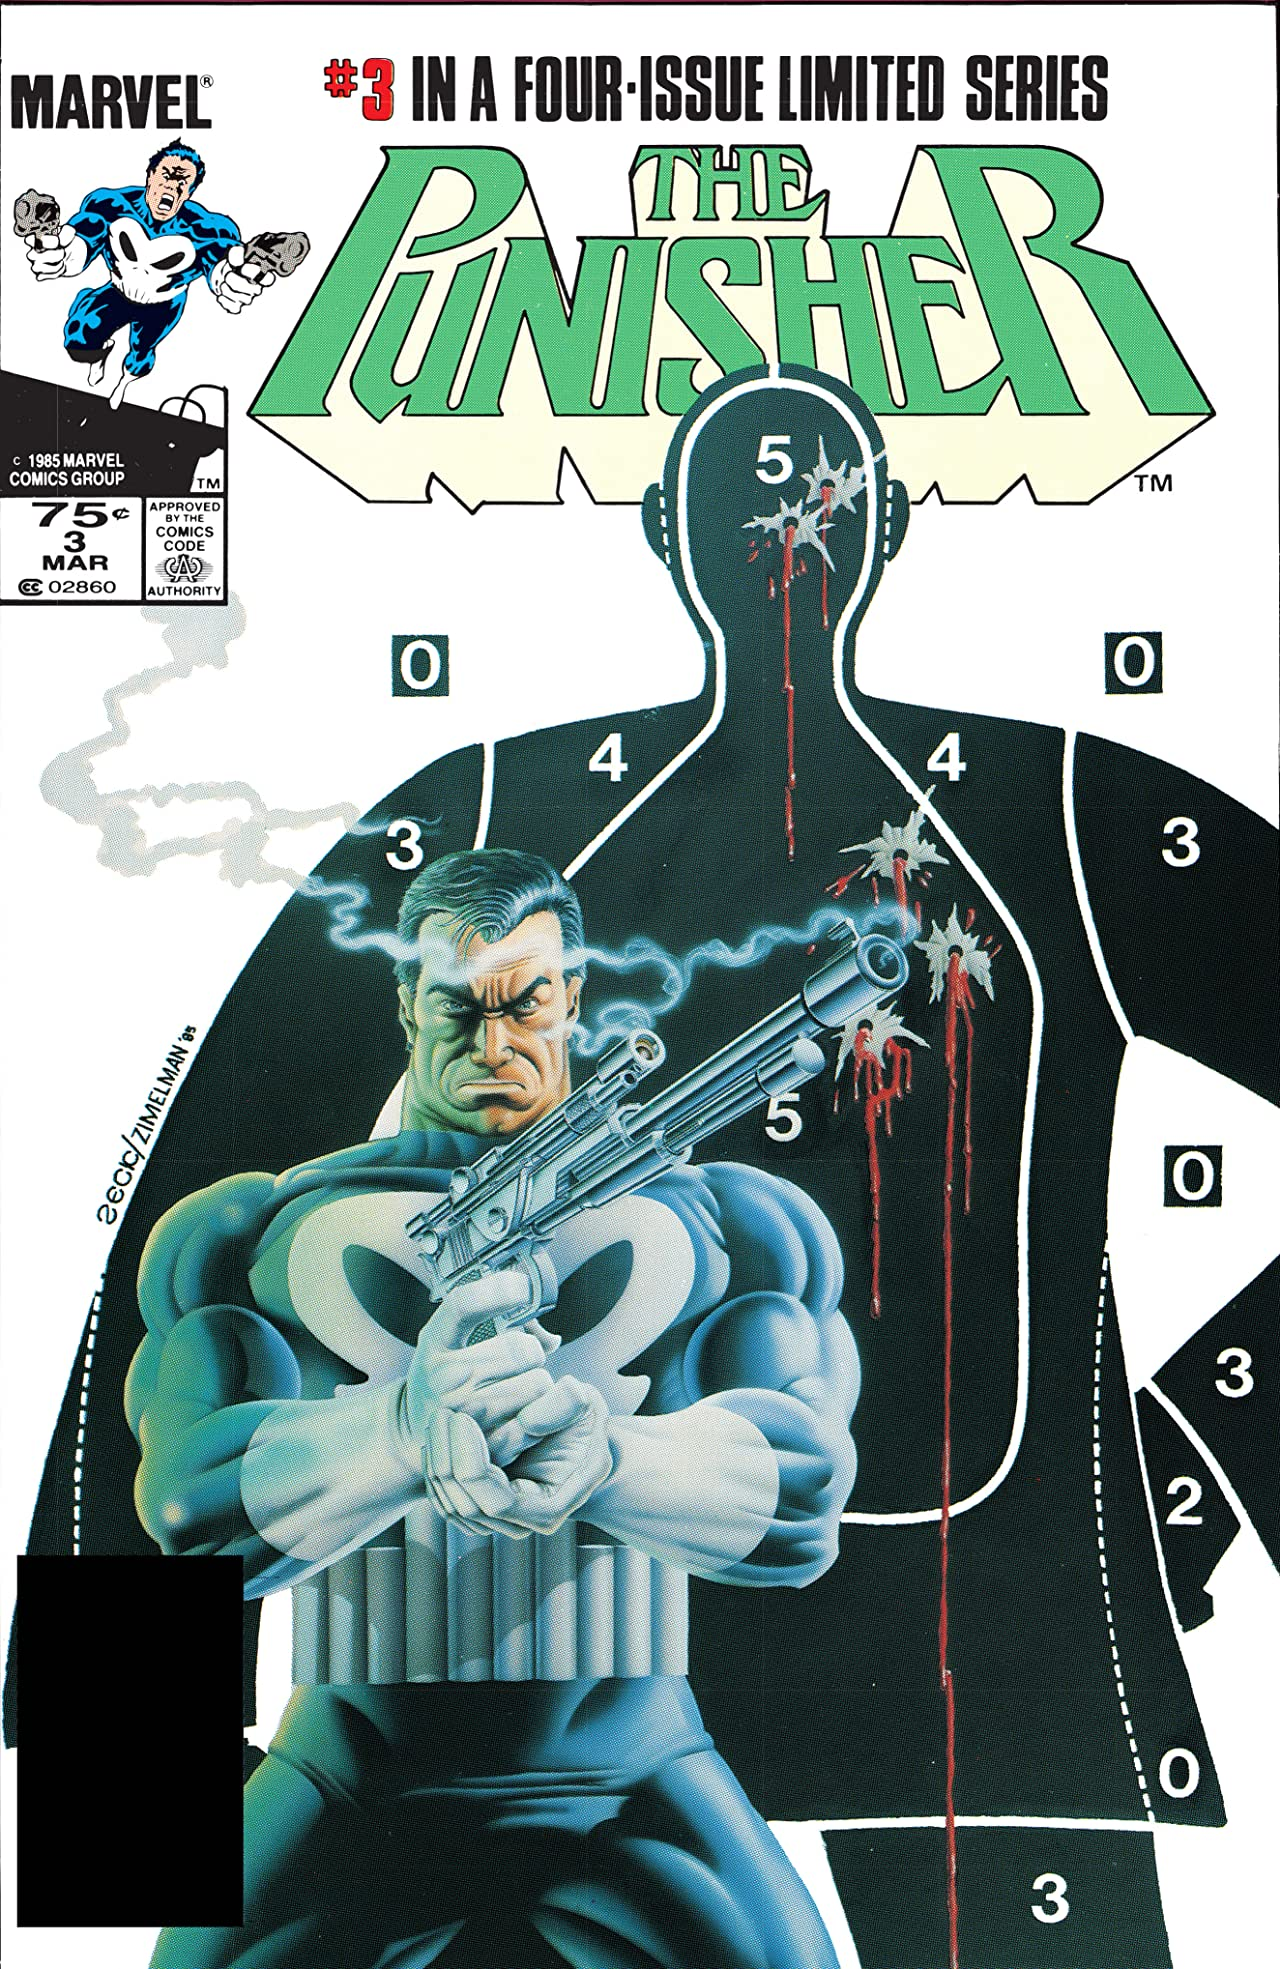 The Punisher (1986) #3 (of 5)